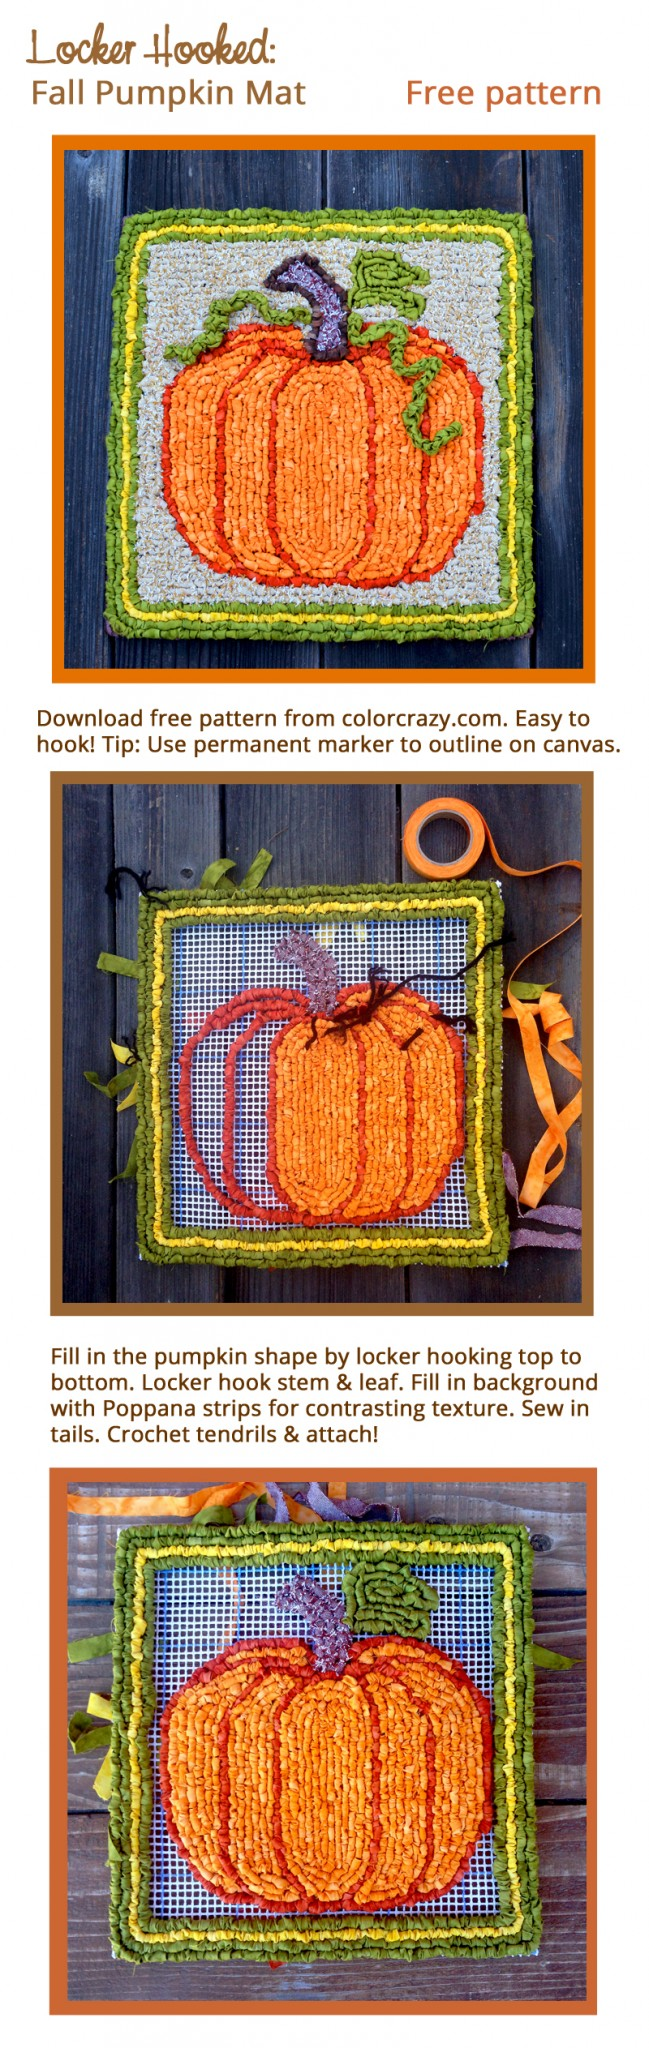 Locker Hooked Fall Pumpkin Mat